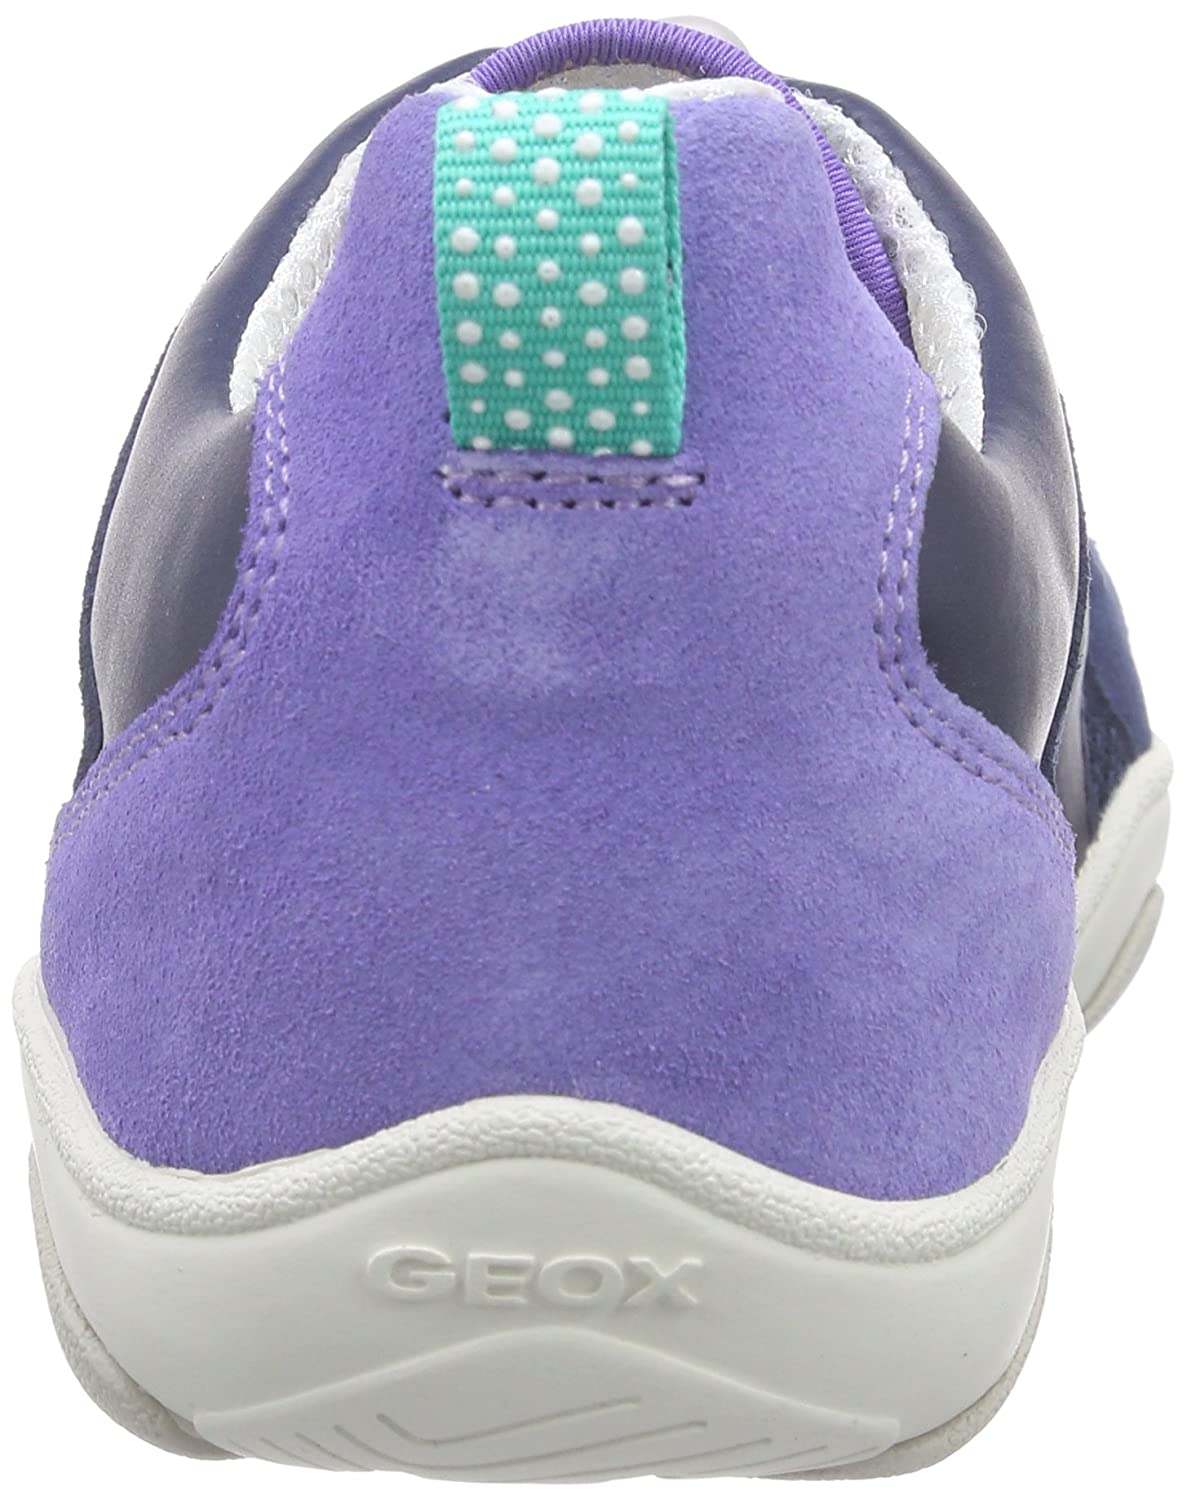 Geox D Arrow C C C Damen Turnschuhe 96380f